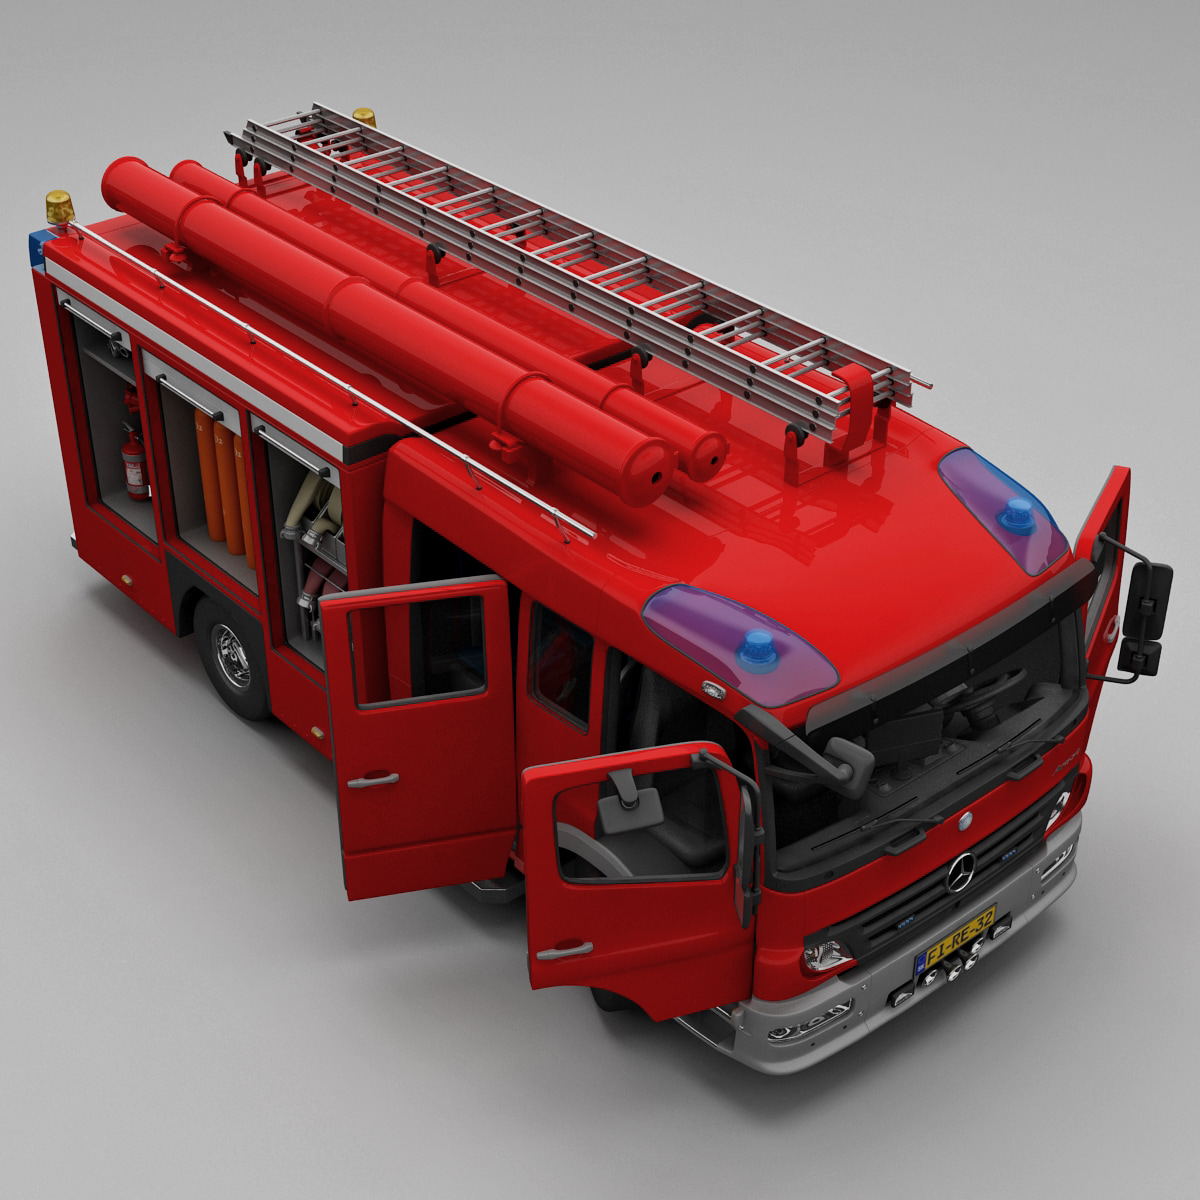 Mercedes_Atego_Fire_Truck_Rigged_0001.jpg